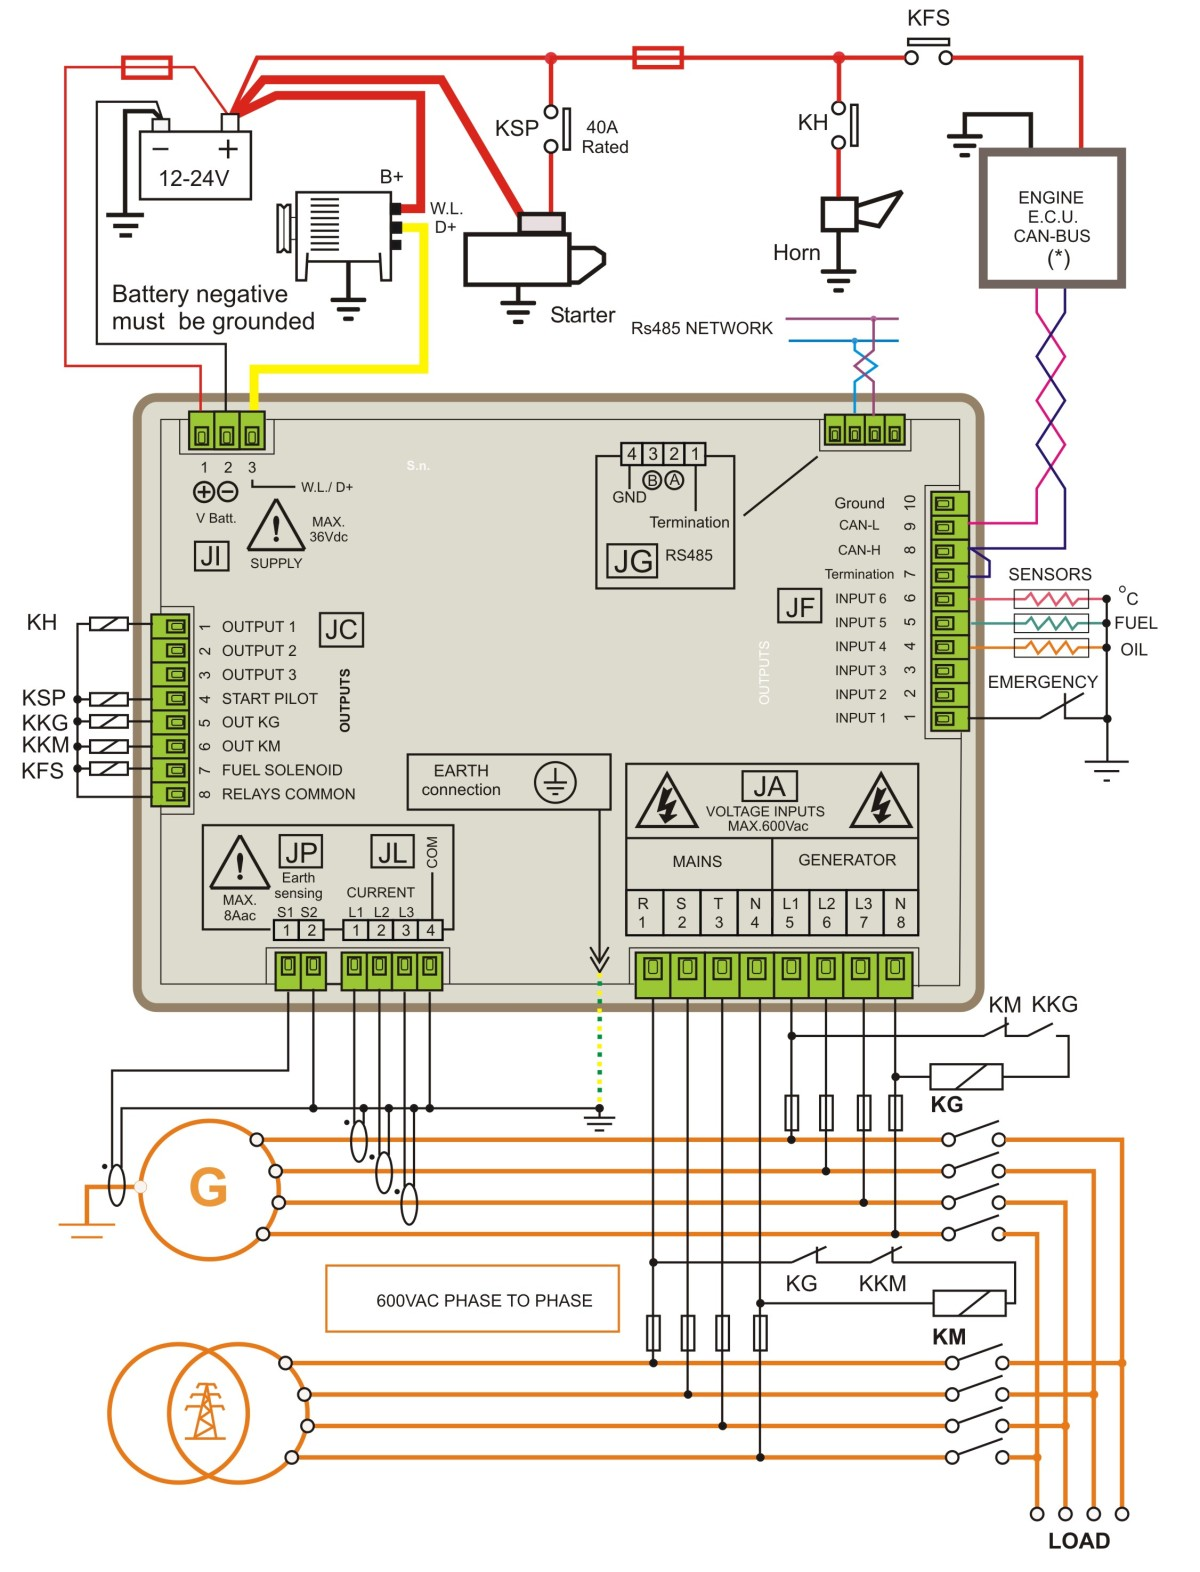 Wiring Diagram Online Wiring Diagram Online The Wiring Diagram Bmw